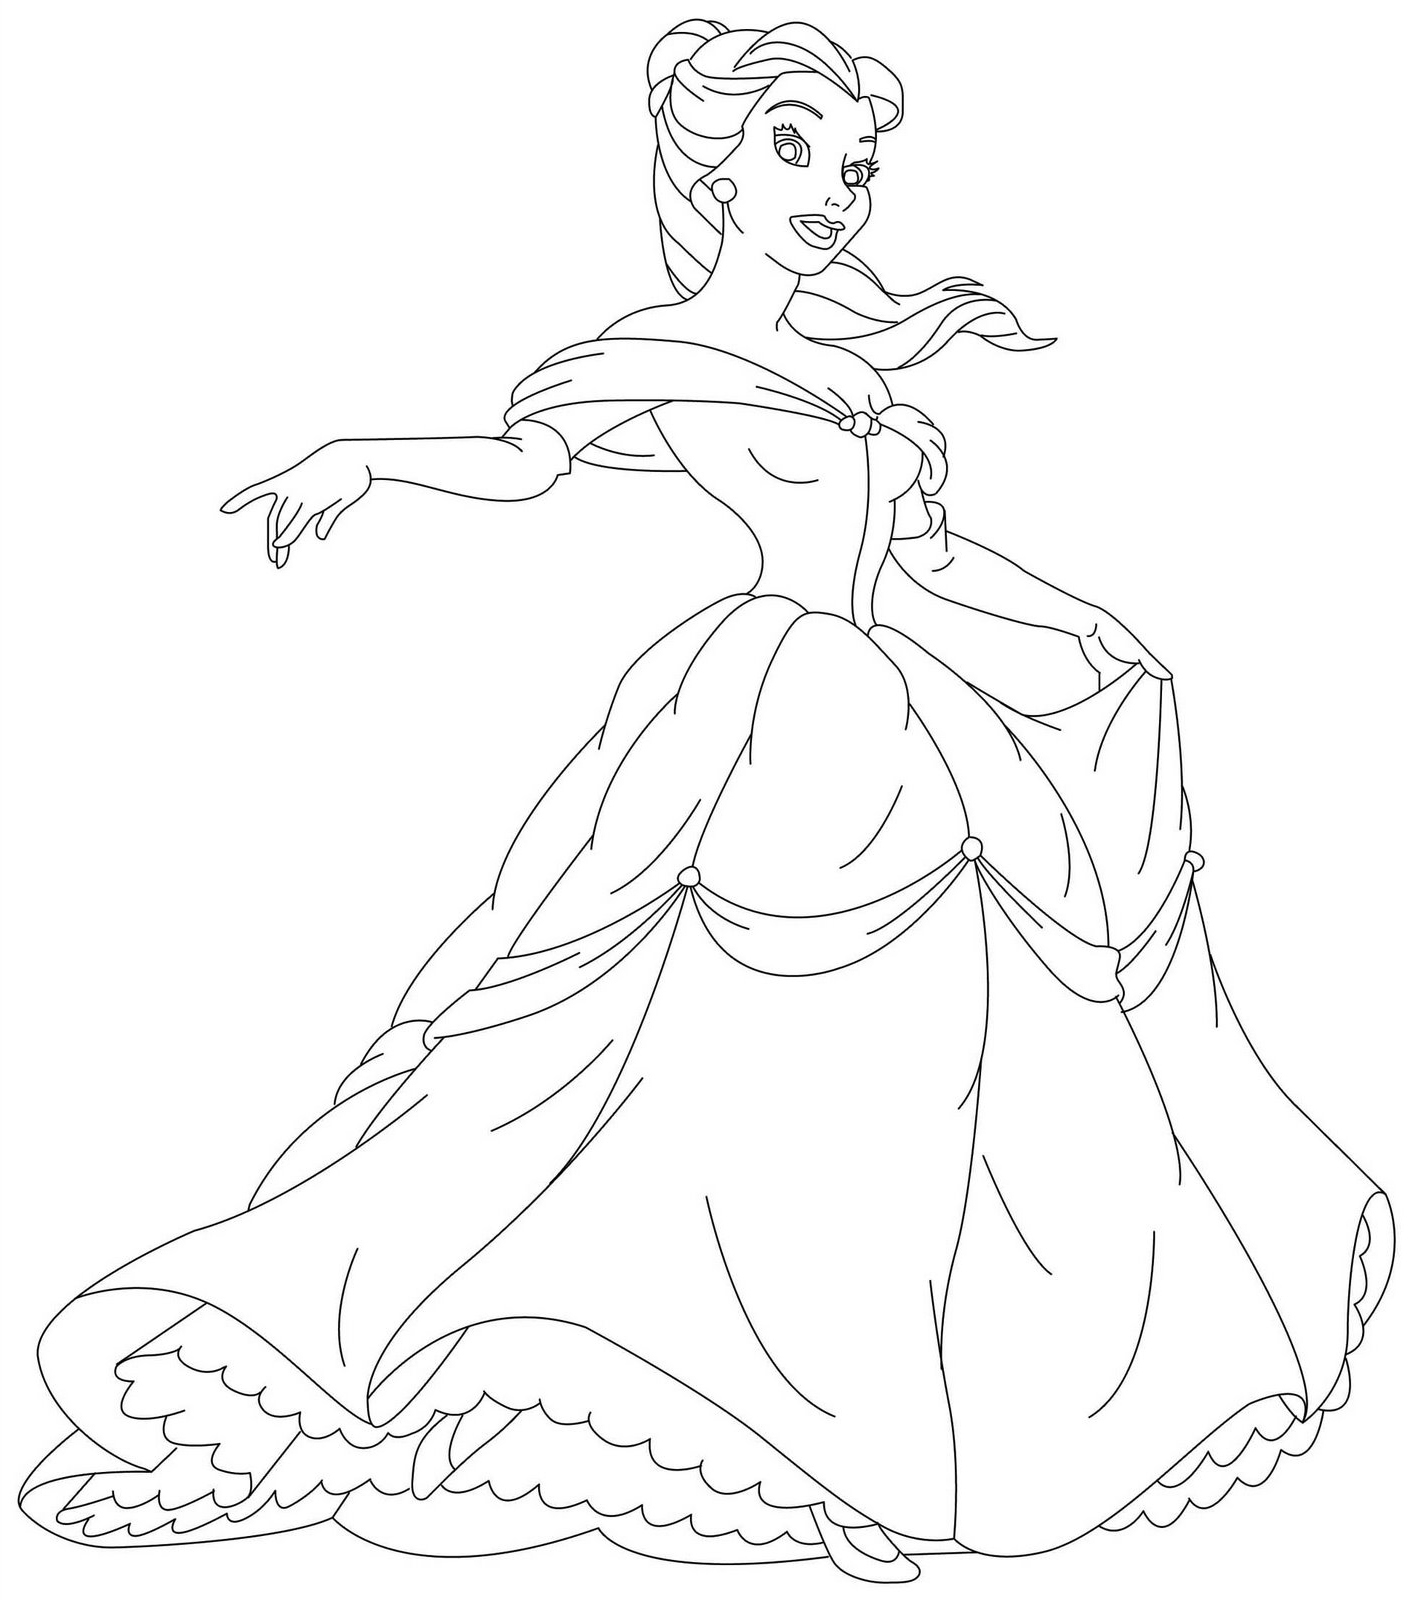 princess coloring pages online top 35 free printable princess coloring pages online princess coloring pages online